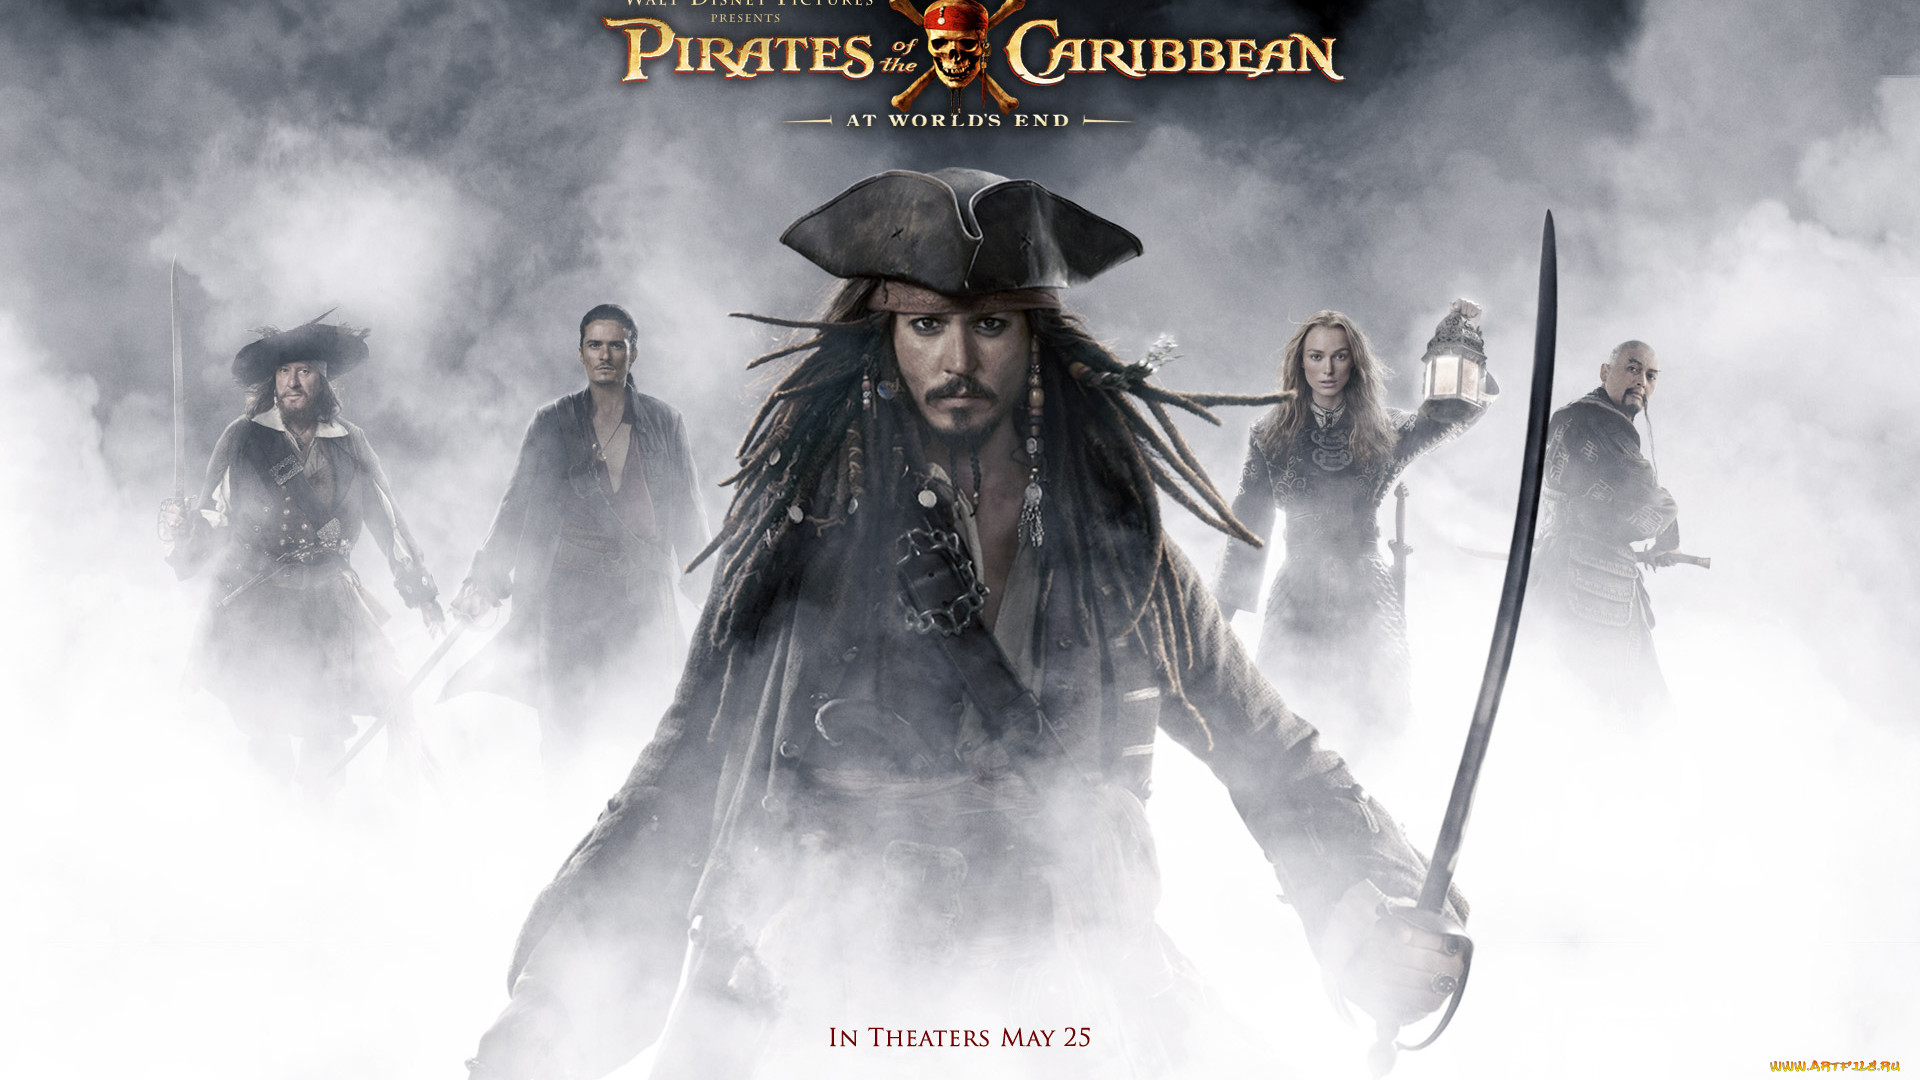 Caribbean christian movie pirate review